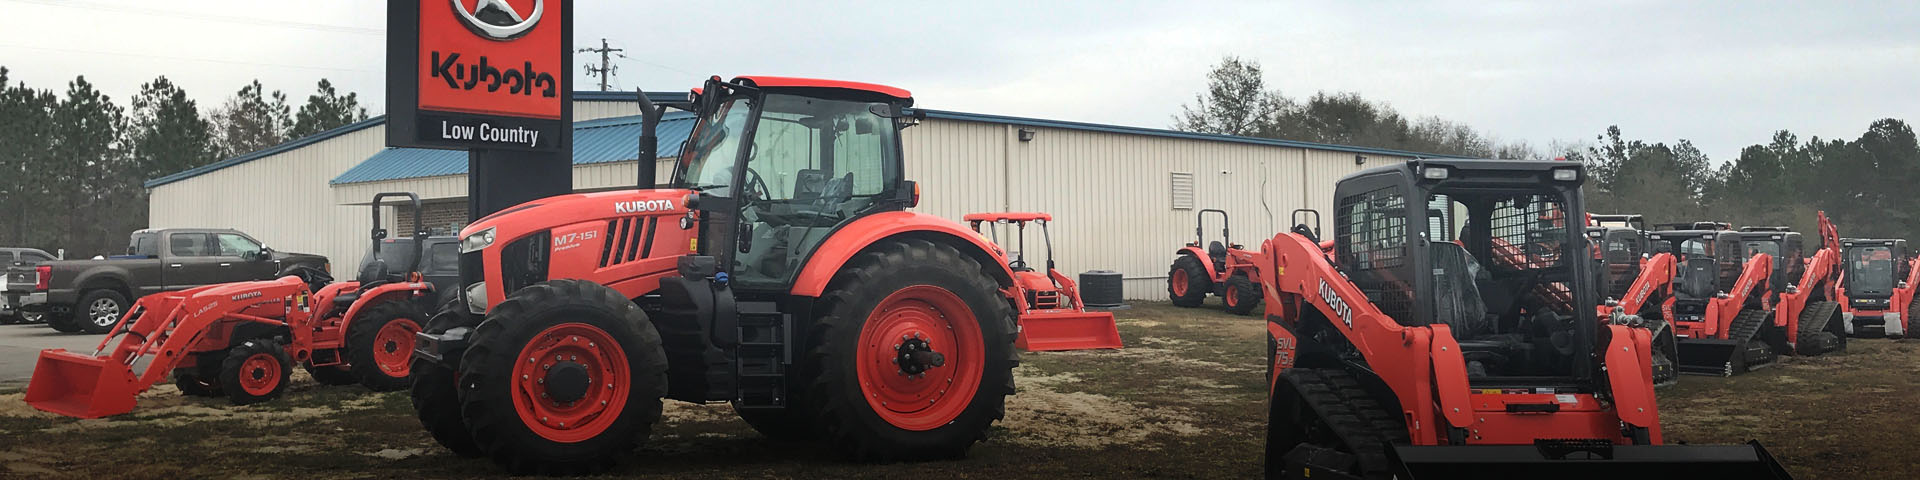 Low Country Kubota Dealership - Statesboro, GA